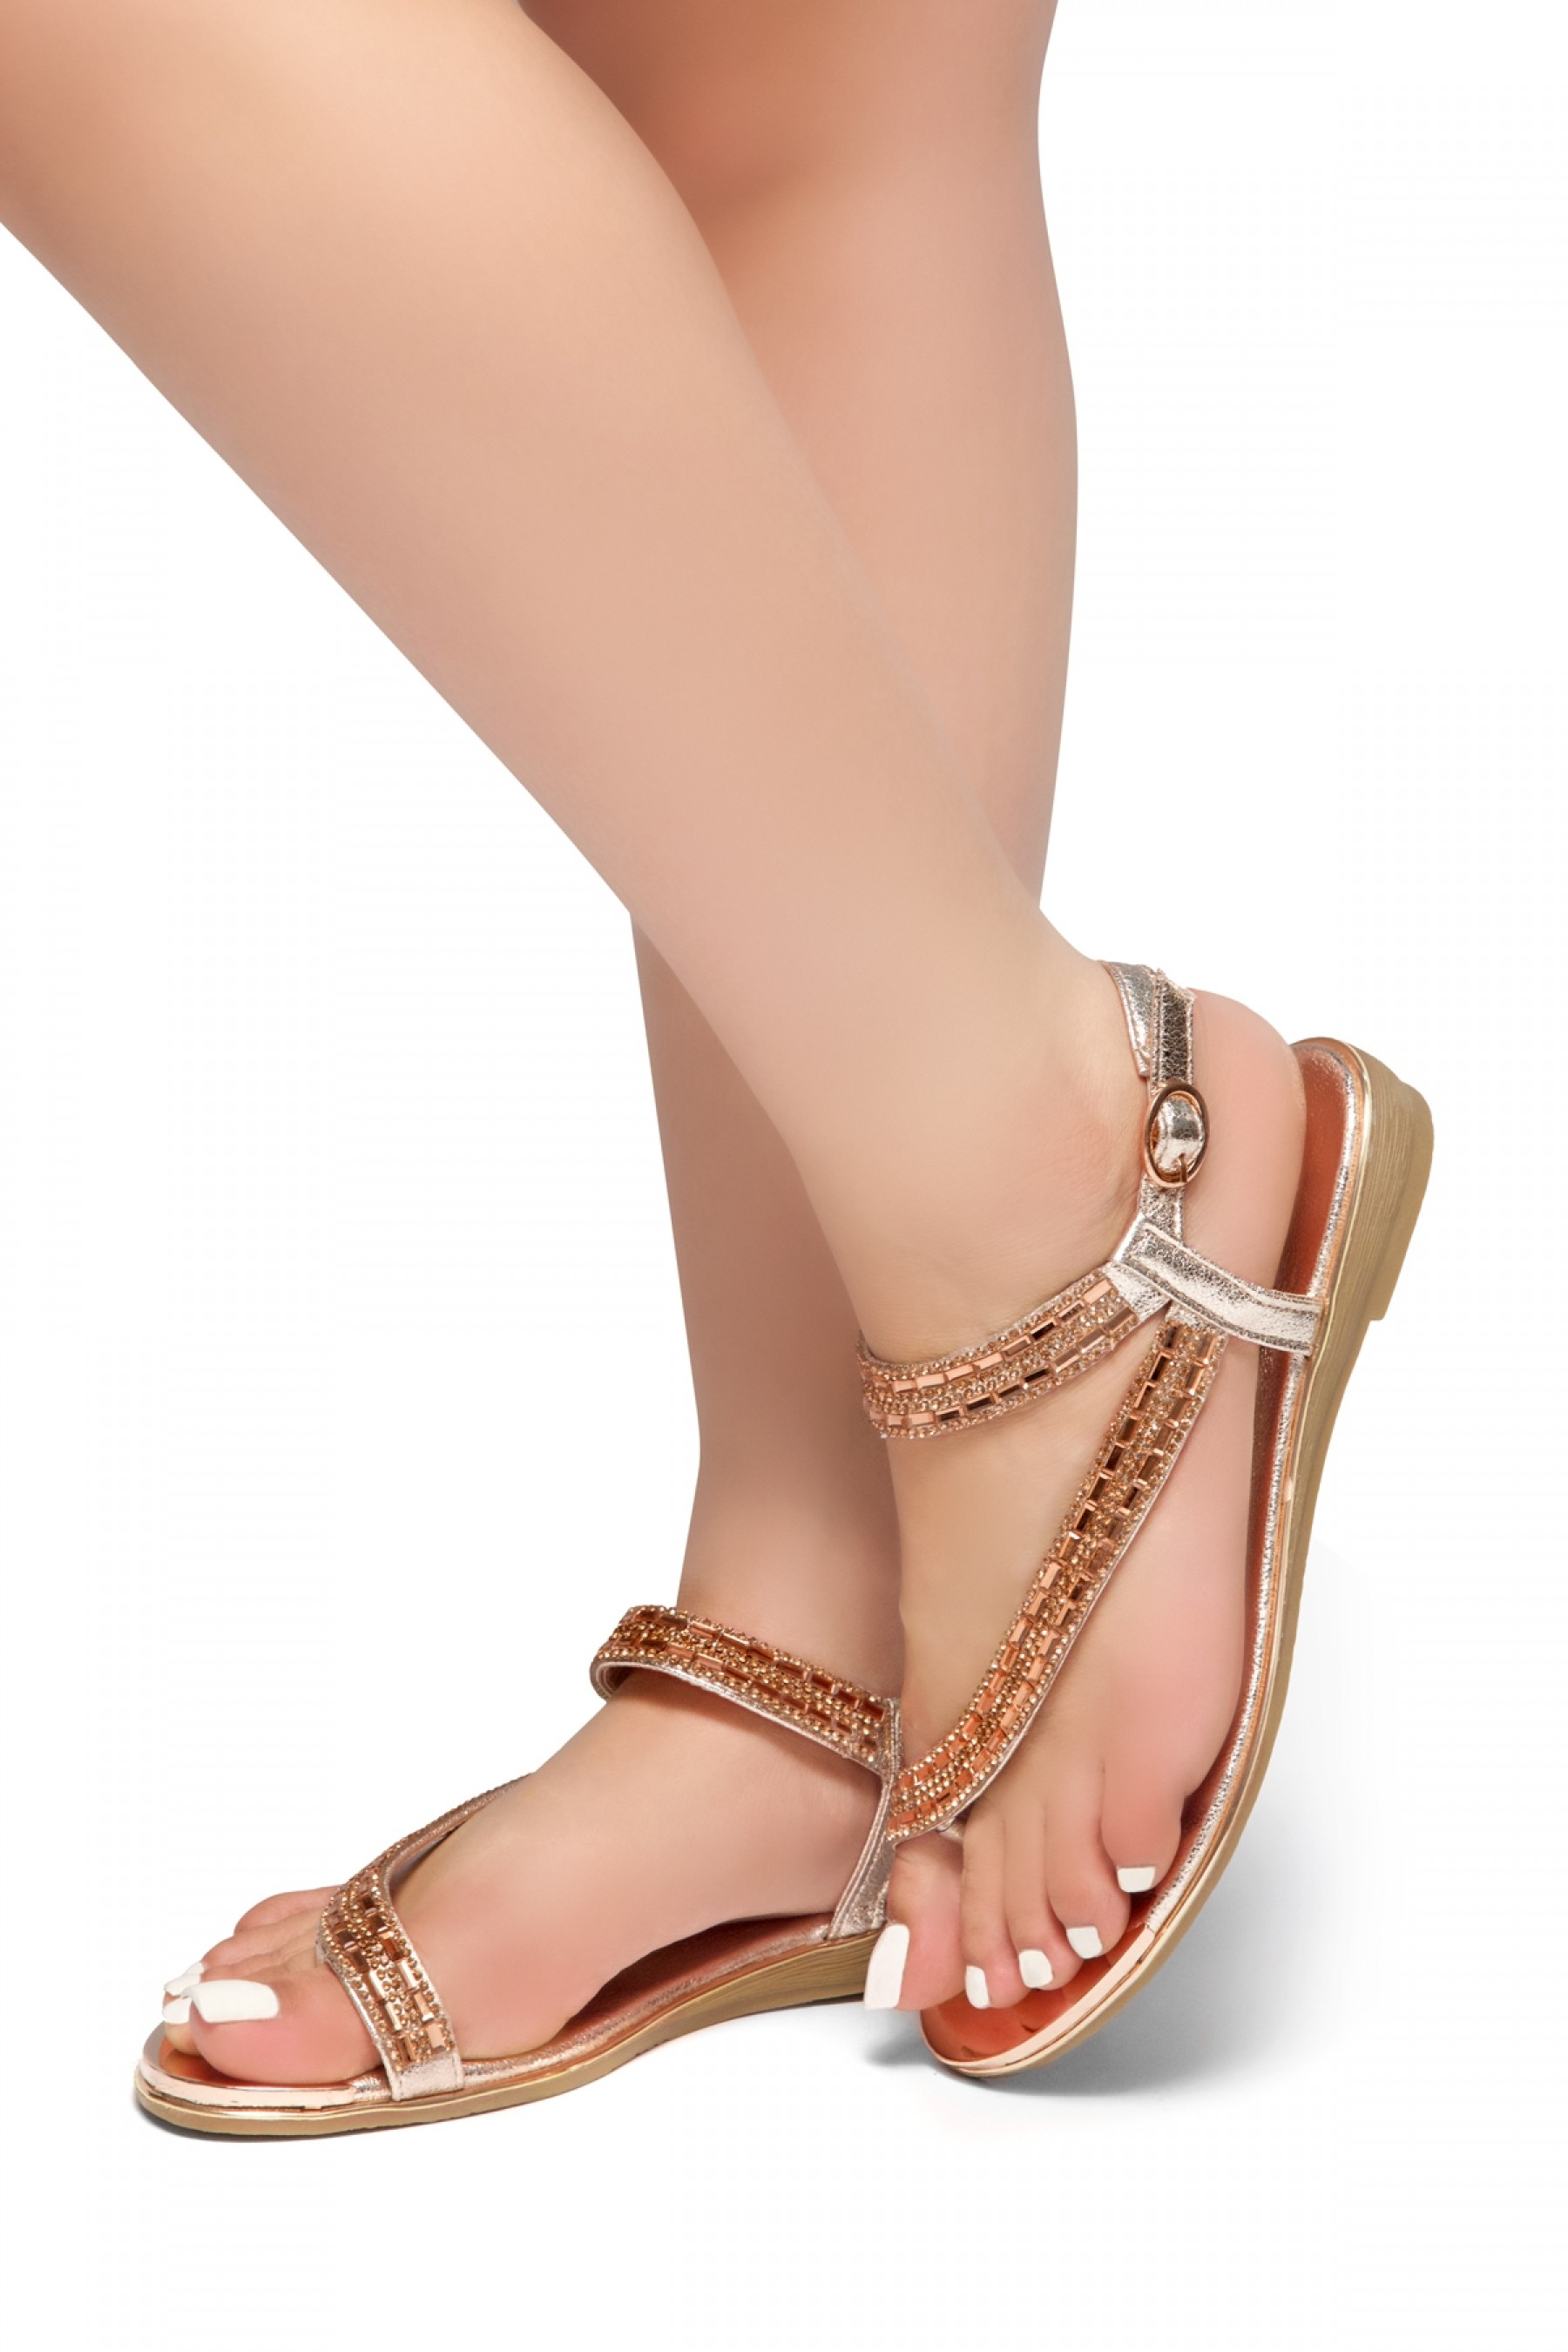 HerStyle Talluto-Rhinestone Details, Open Toe, Flat Sandals (RoseGold)